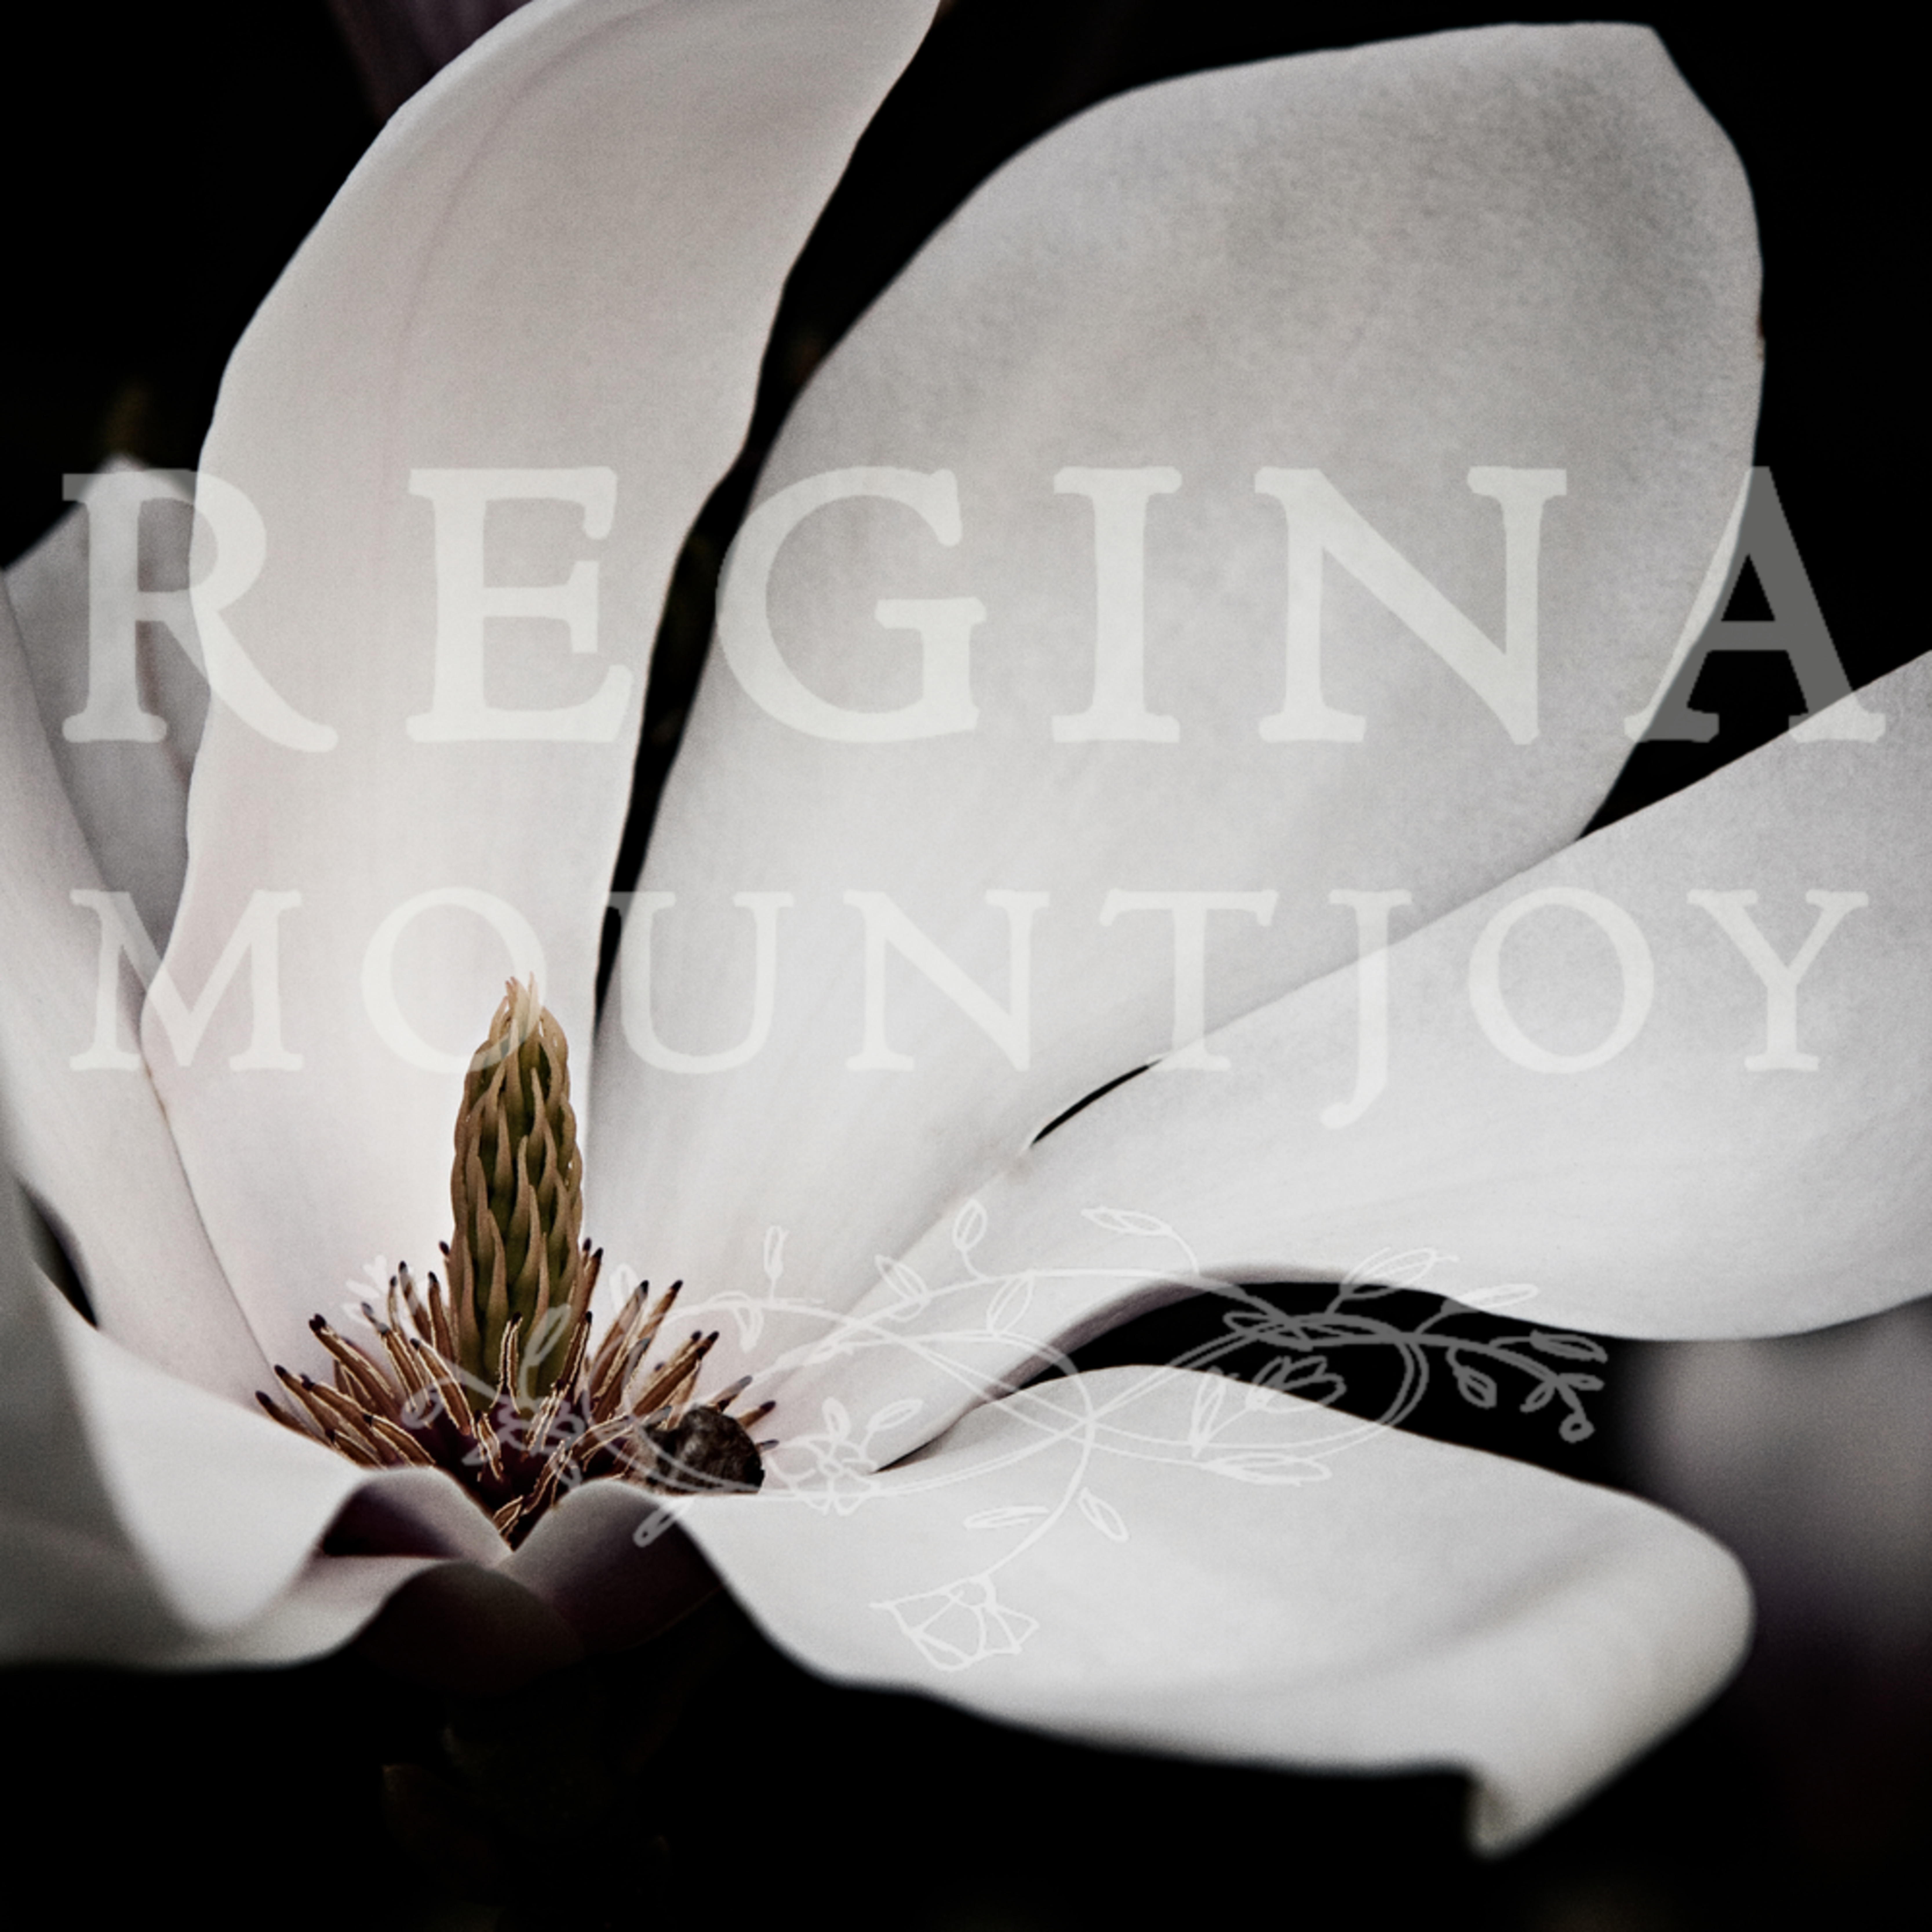 Queen of peace magnolia kv6f3i